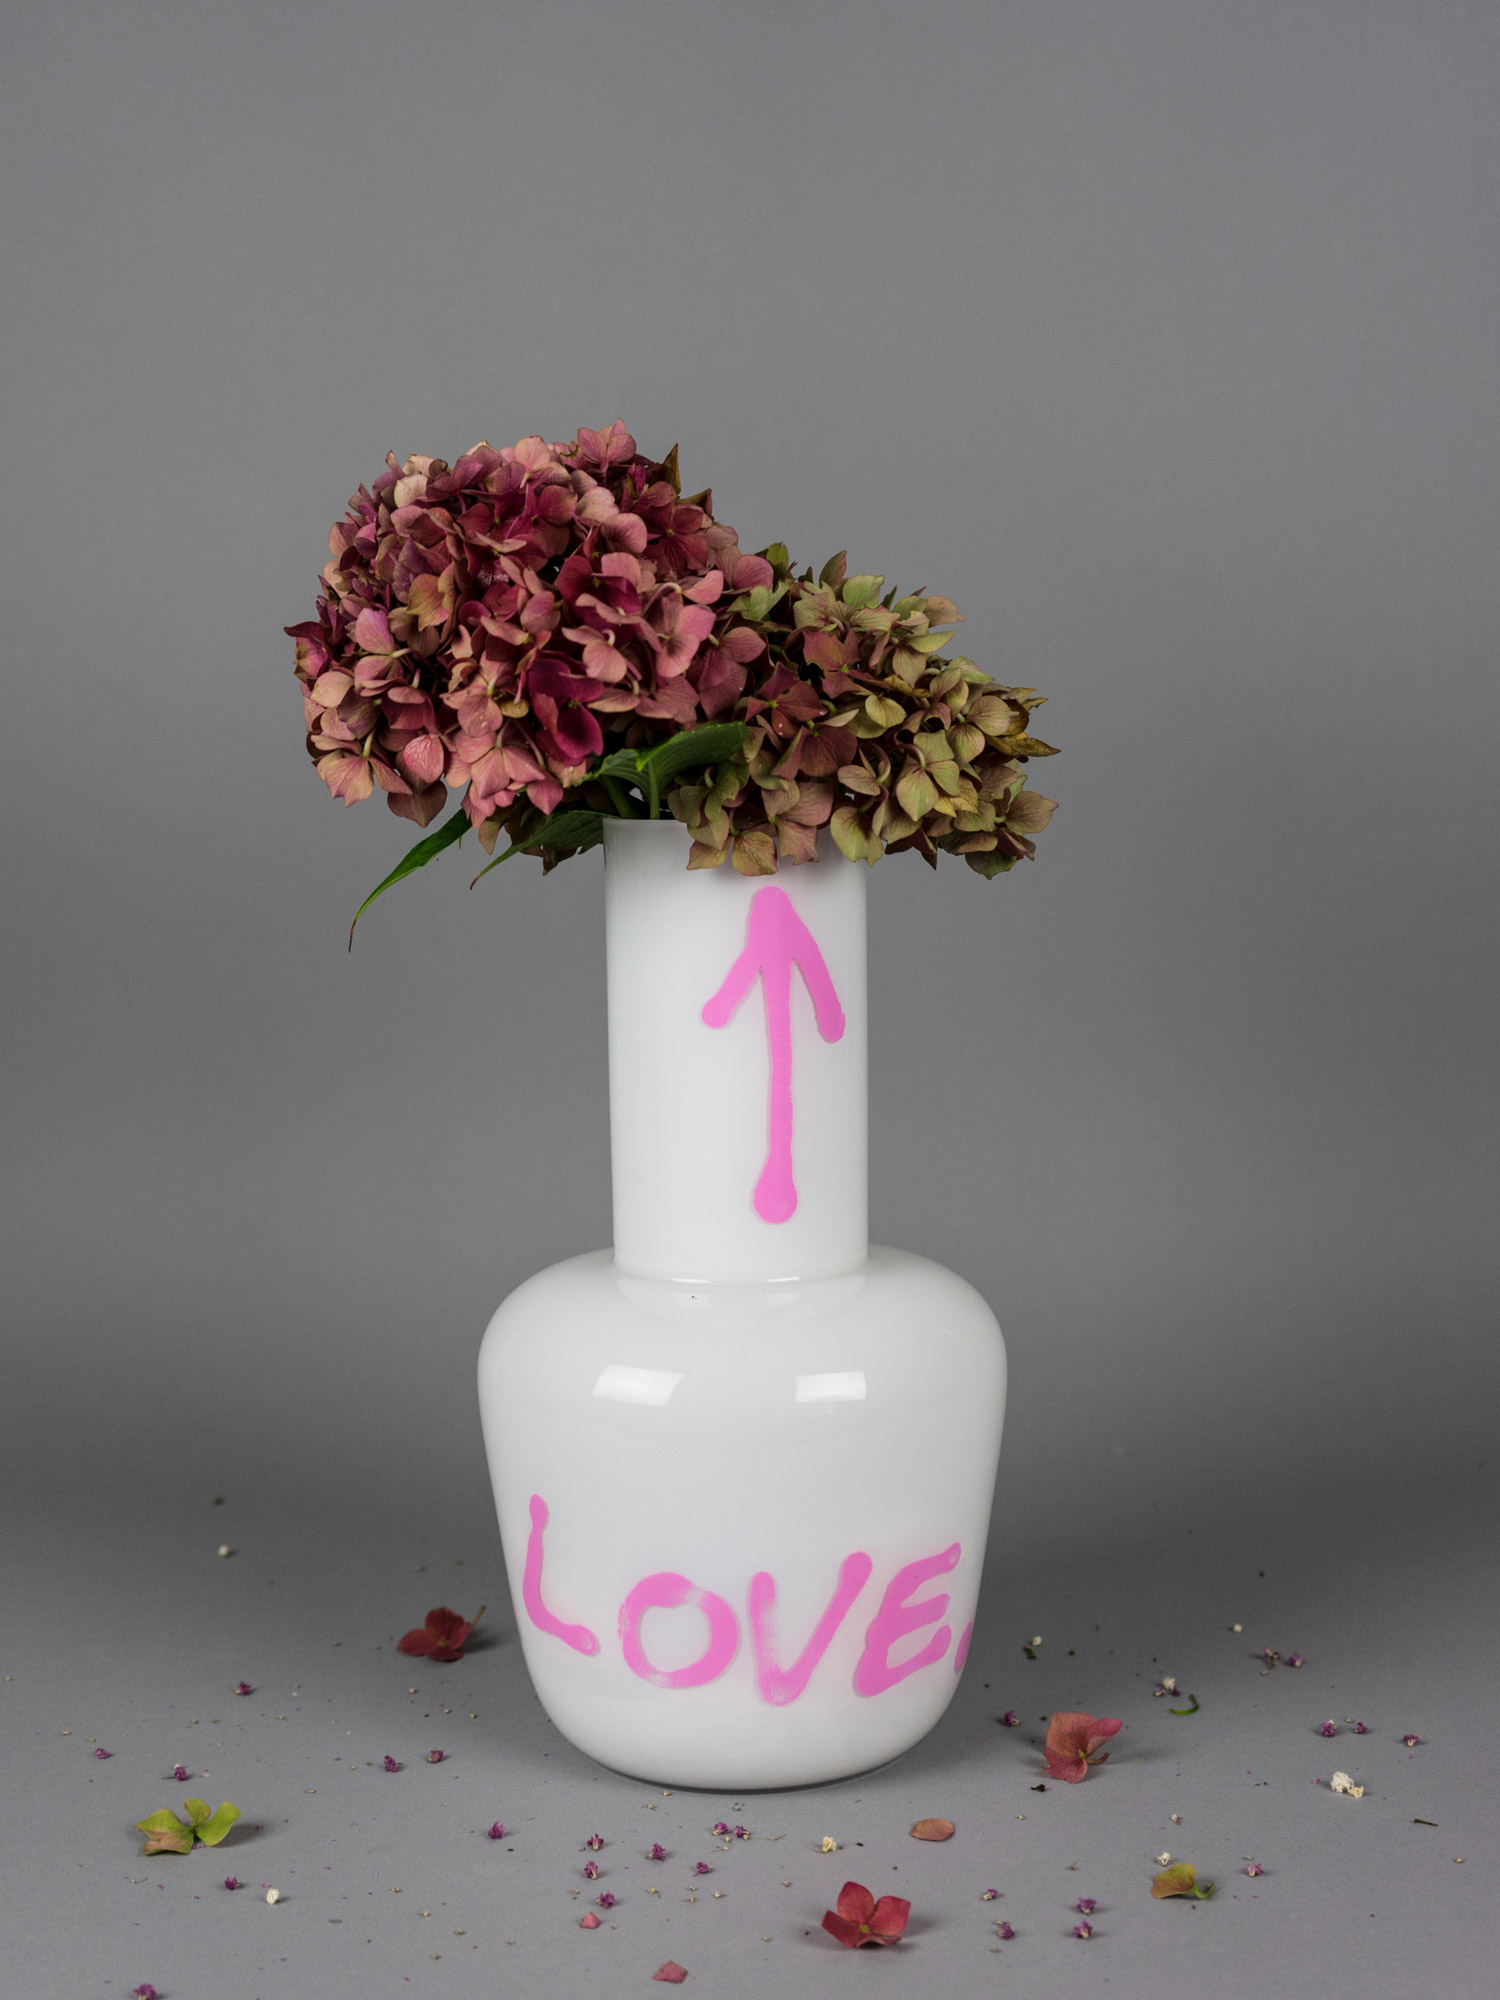 White love vase with hortenzia flowe by Qubus